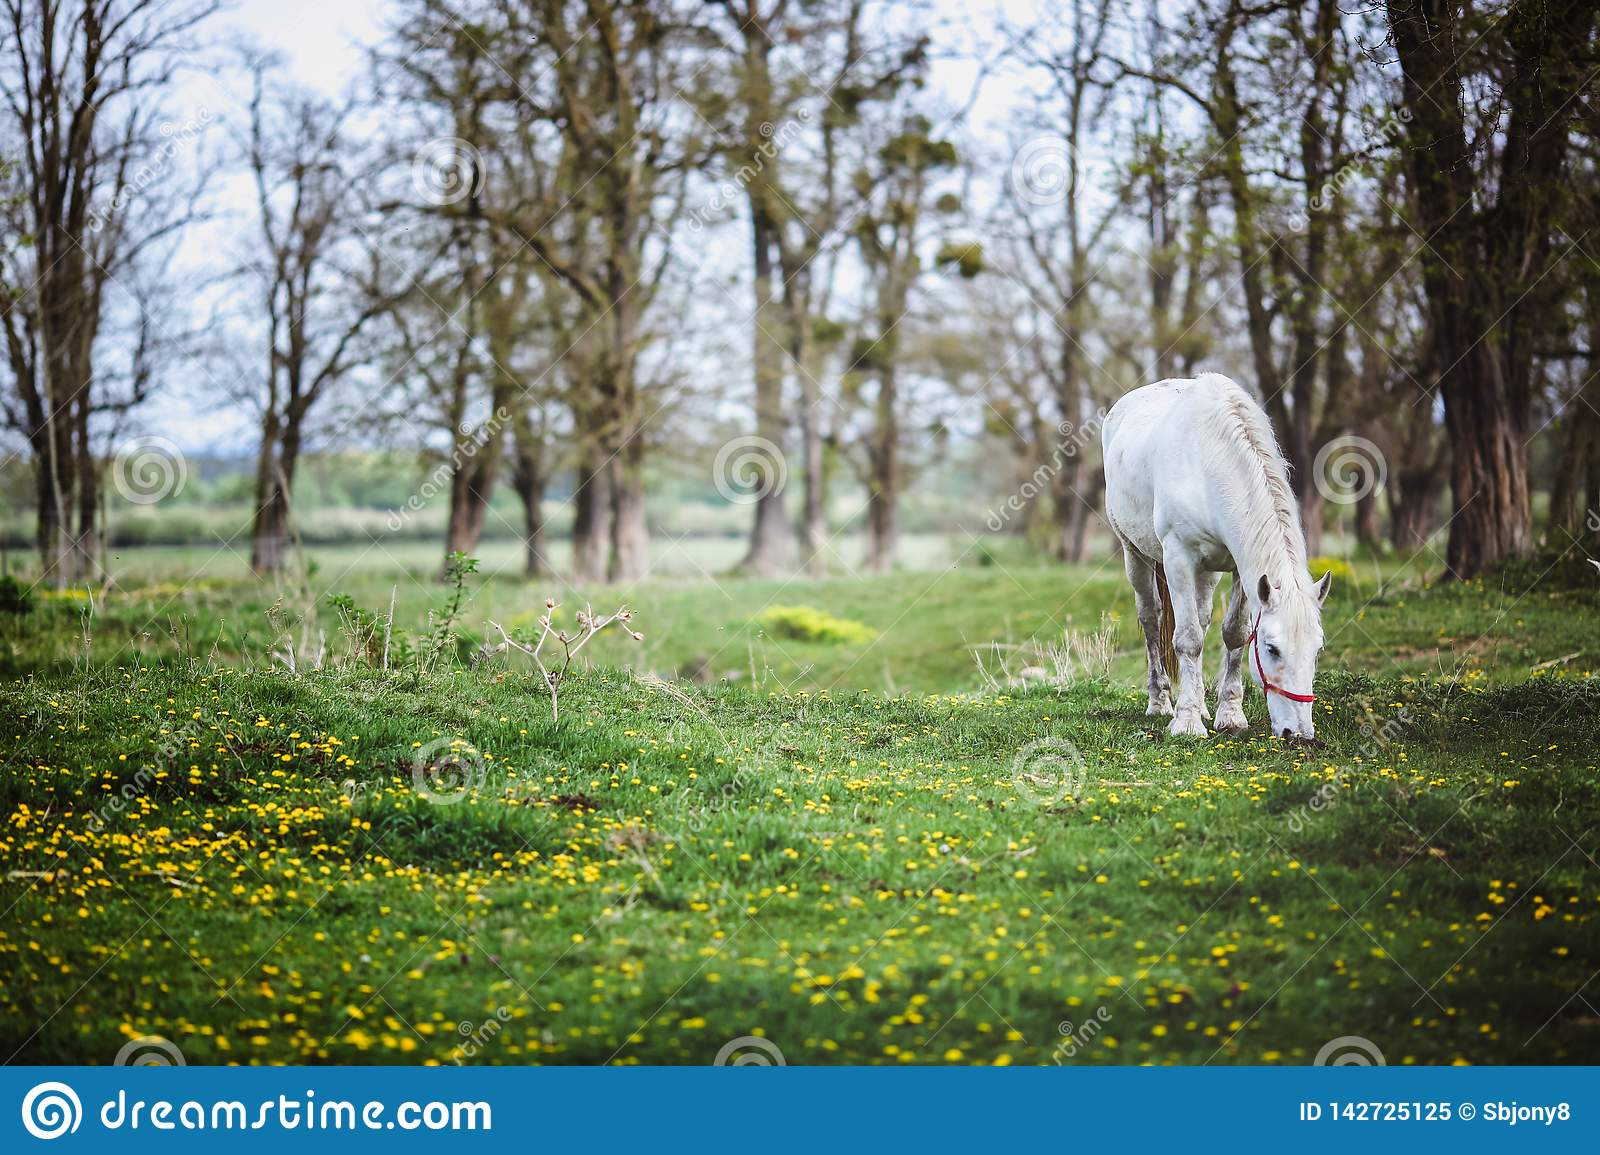 White horse standing in a forest glade with yellow flowers